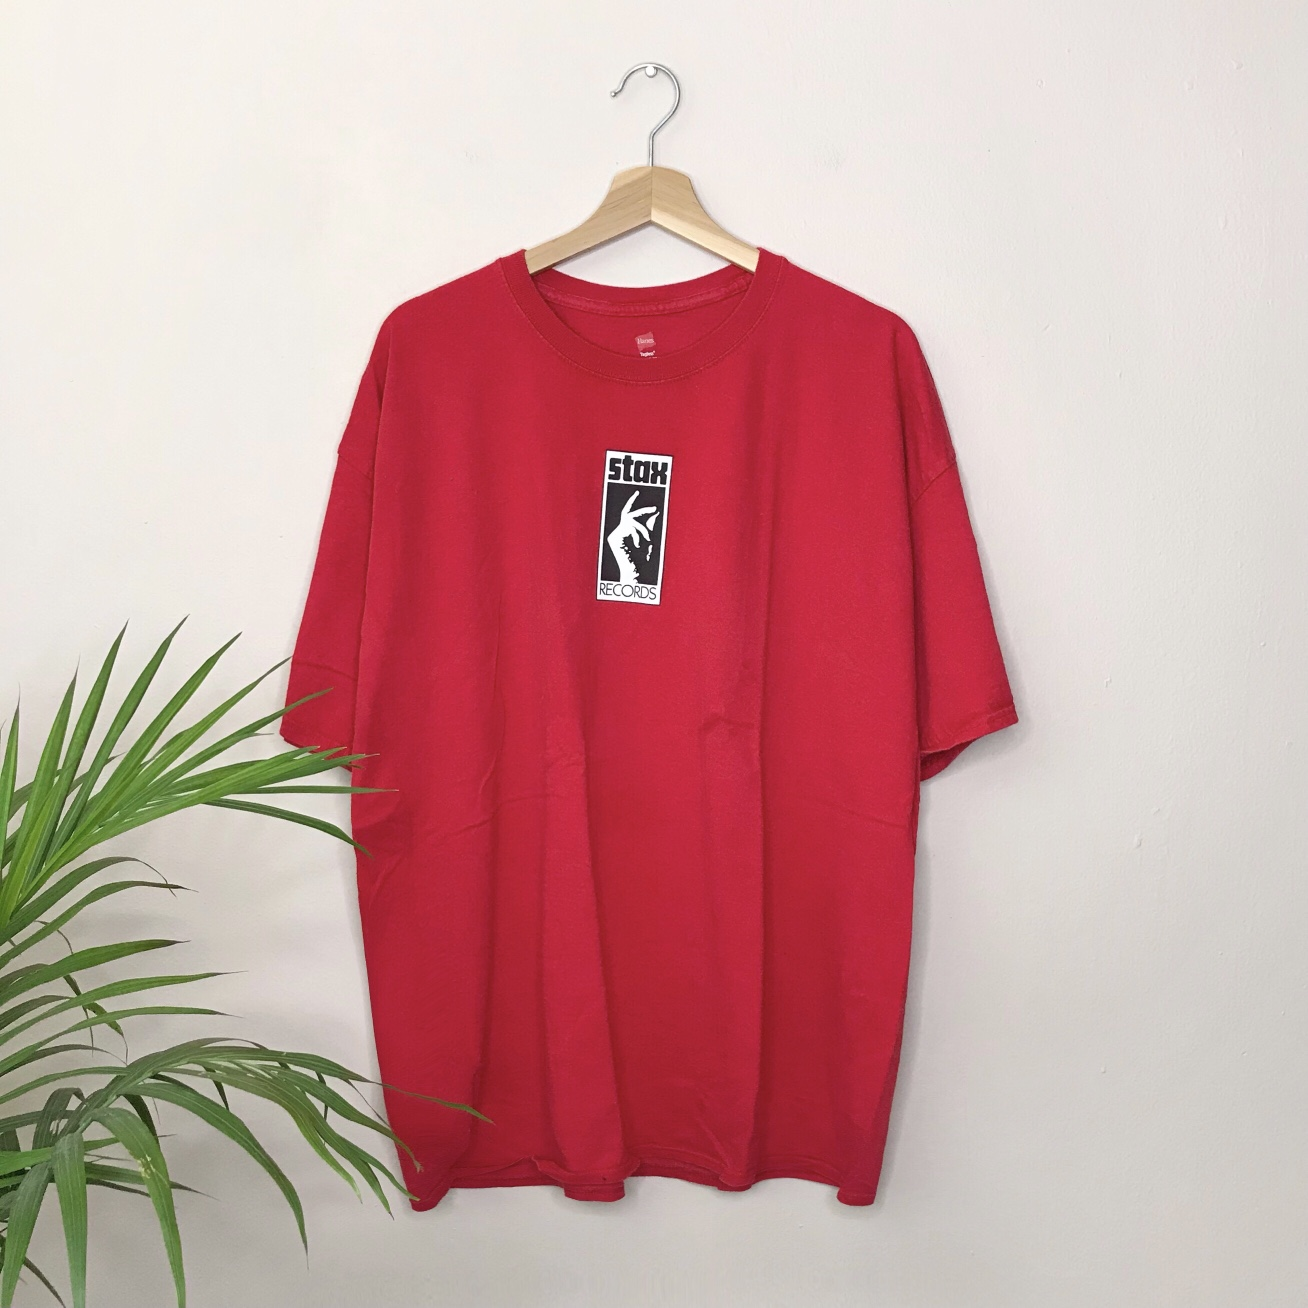 Product Image 1 - Stay Records graphic tee 🌐  Men's